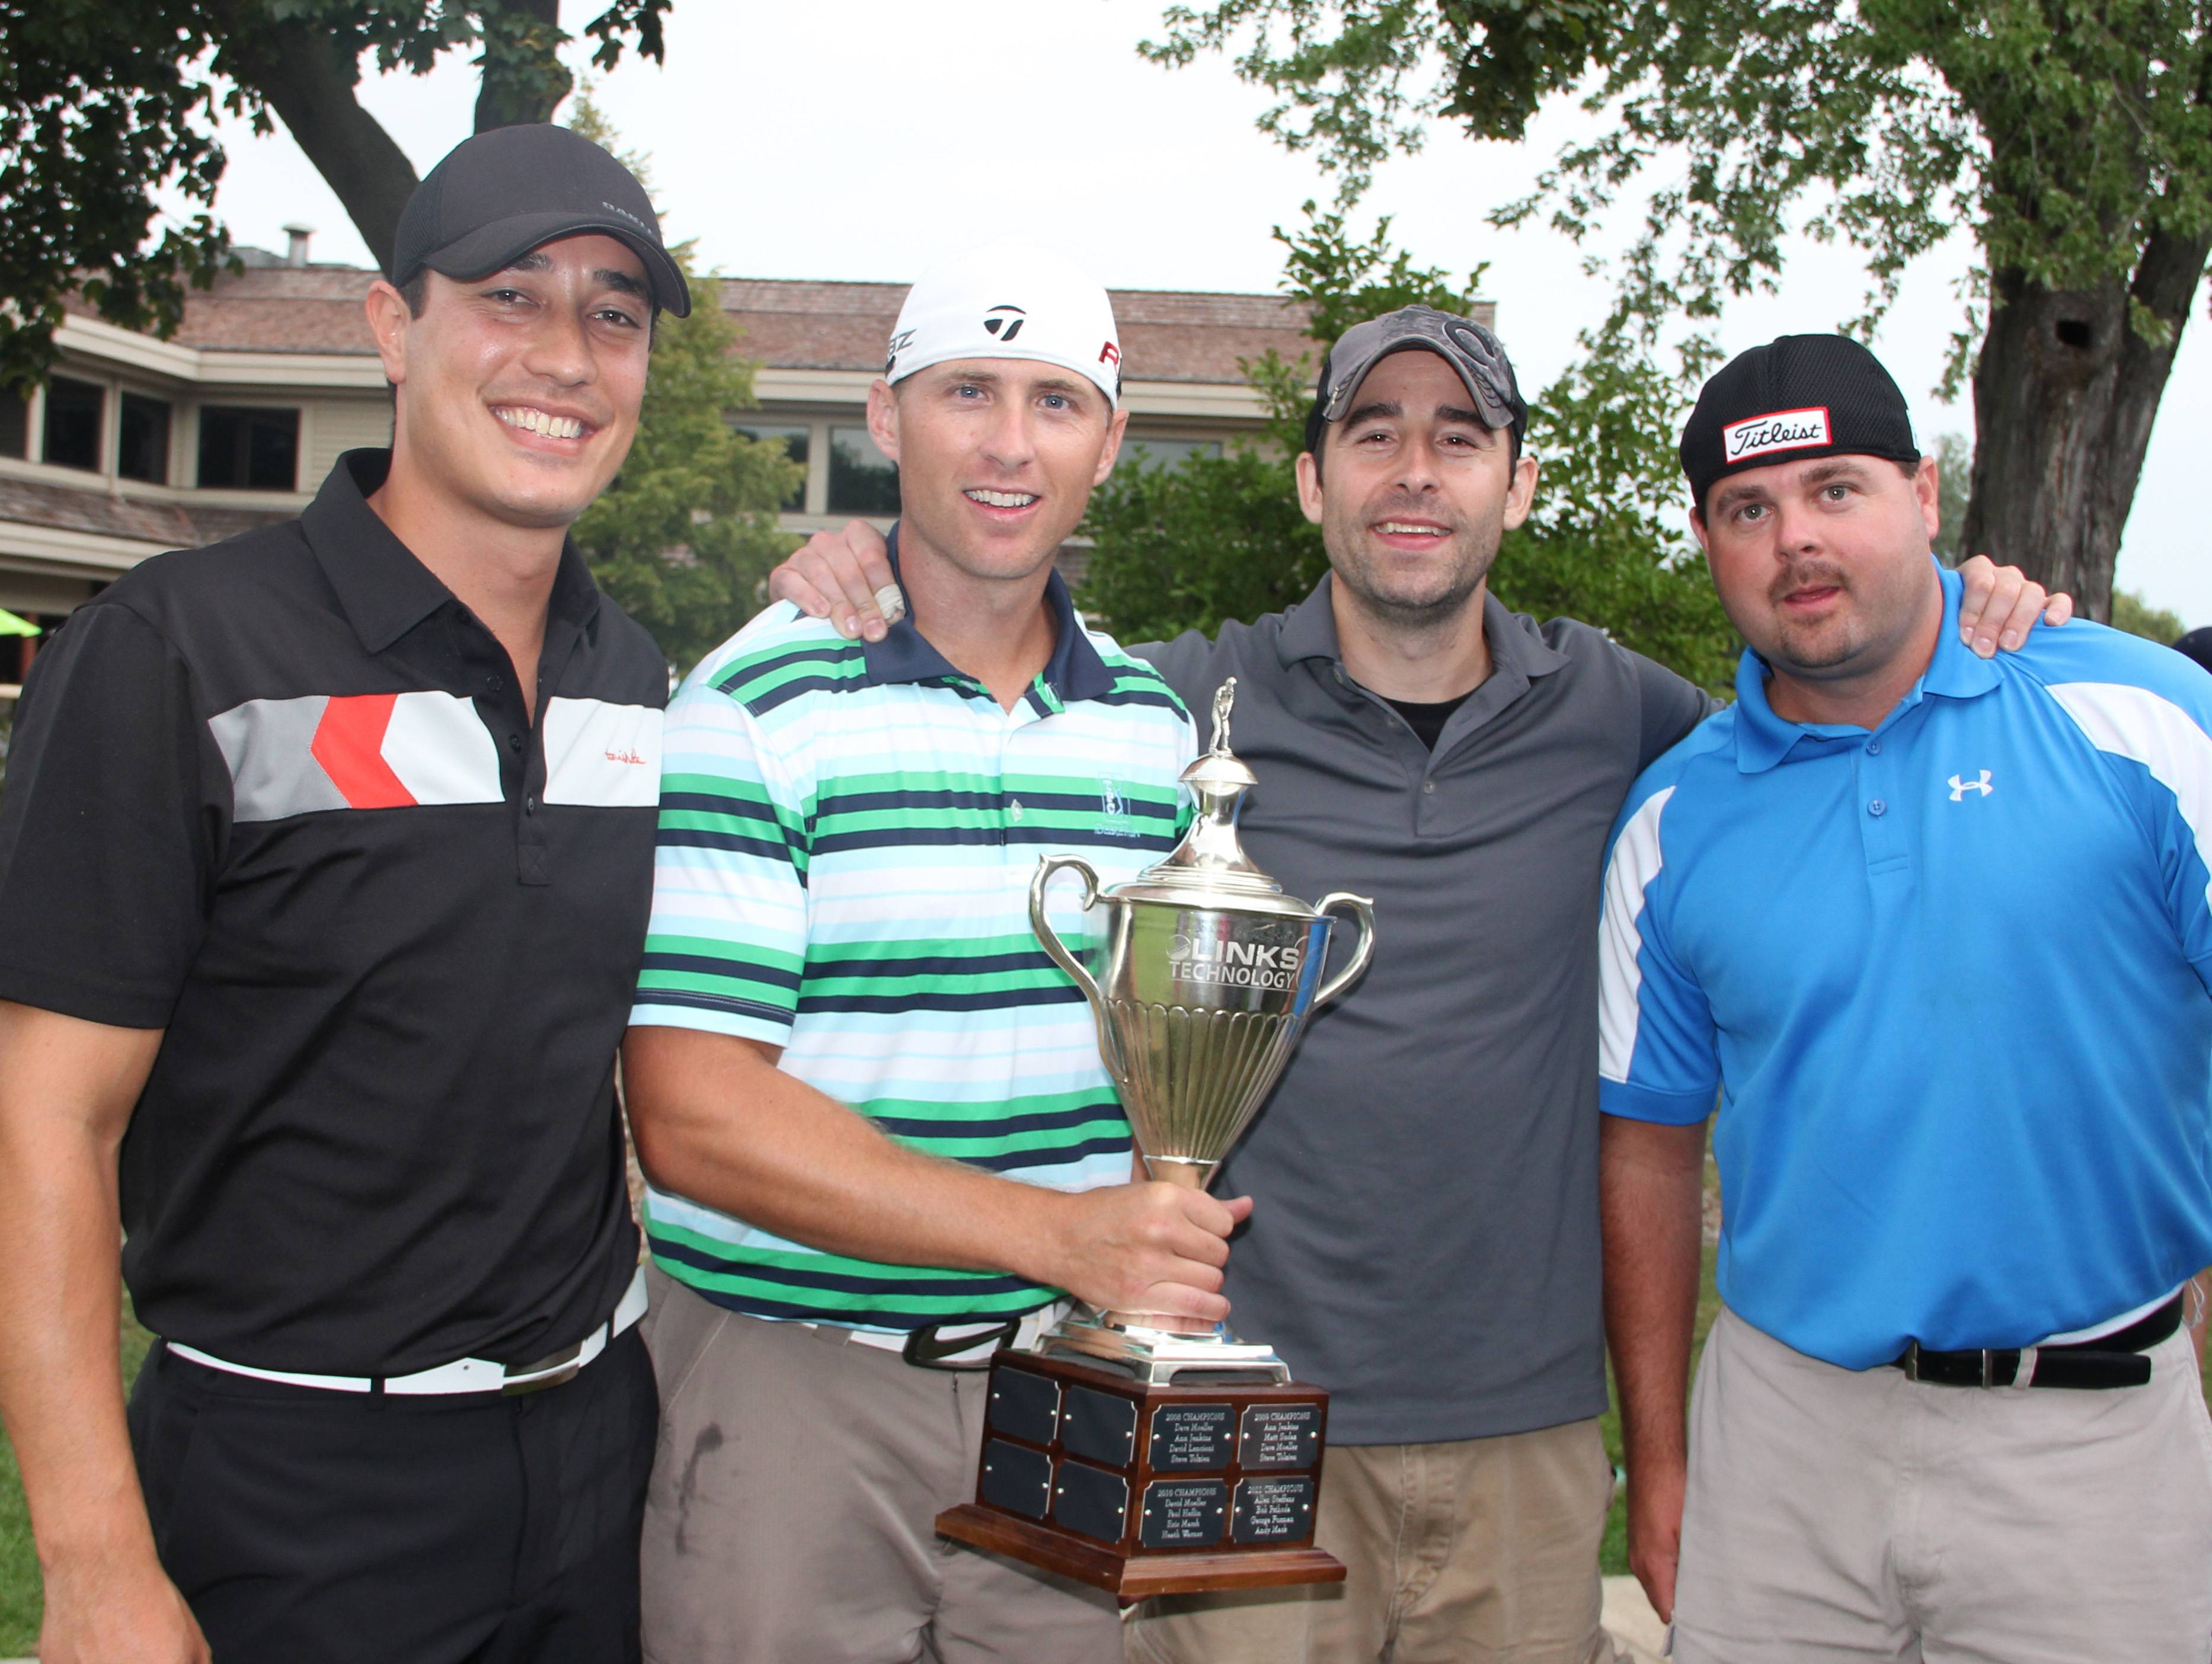 Ryan Brawner, Chris Kappes, Nick Bish and Jason Milam won last year's Links Technology Cup.